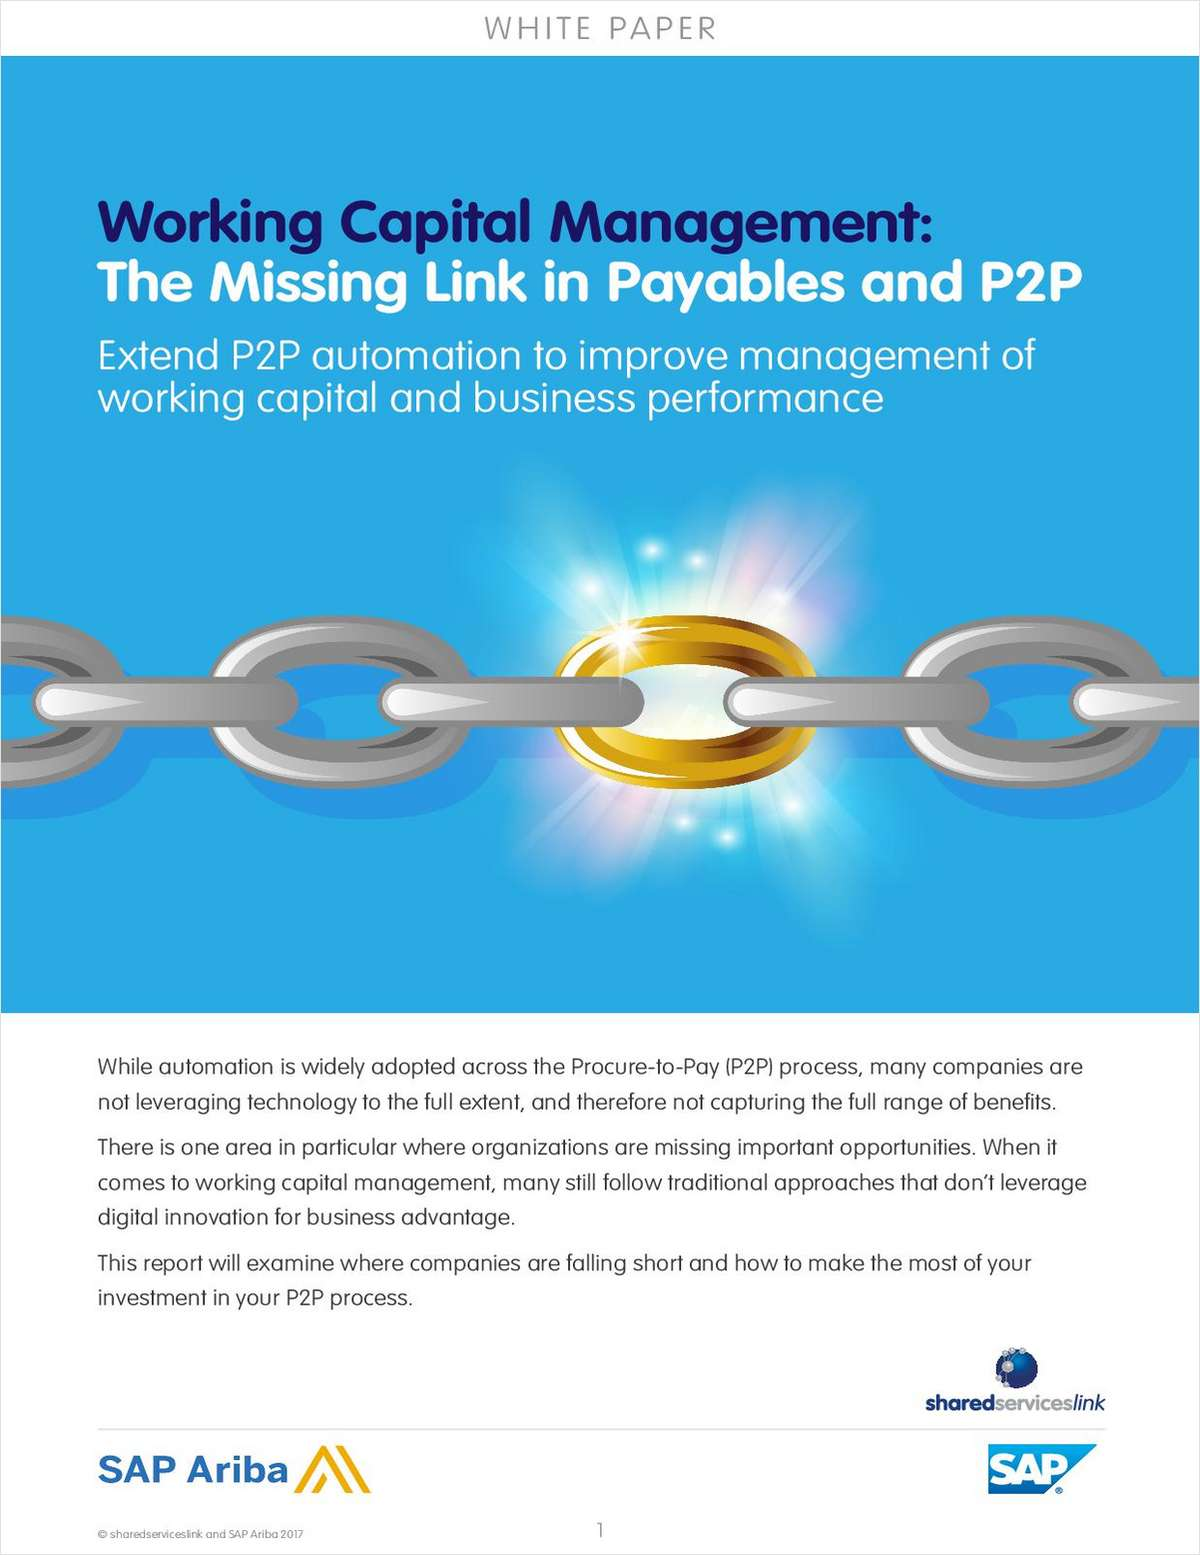 Working Capital Management: The Missing Link in Payables and P2P